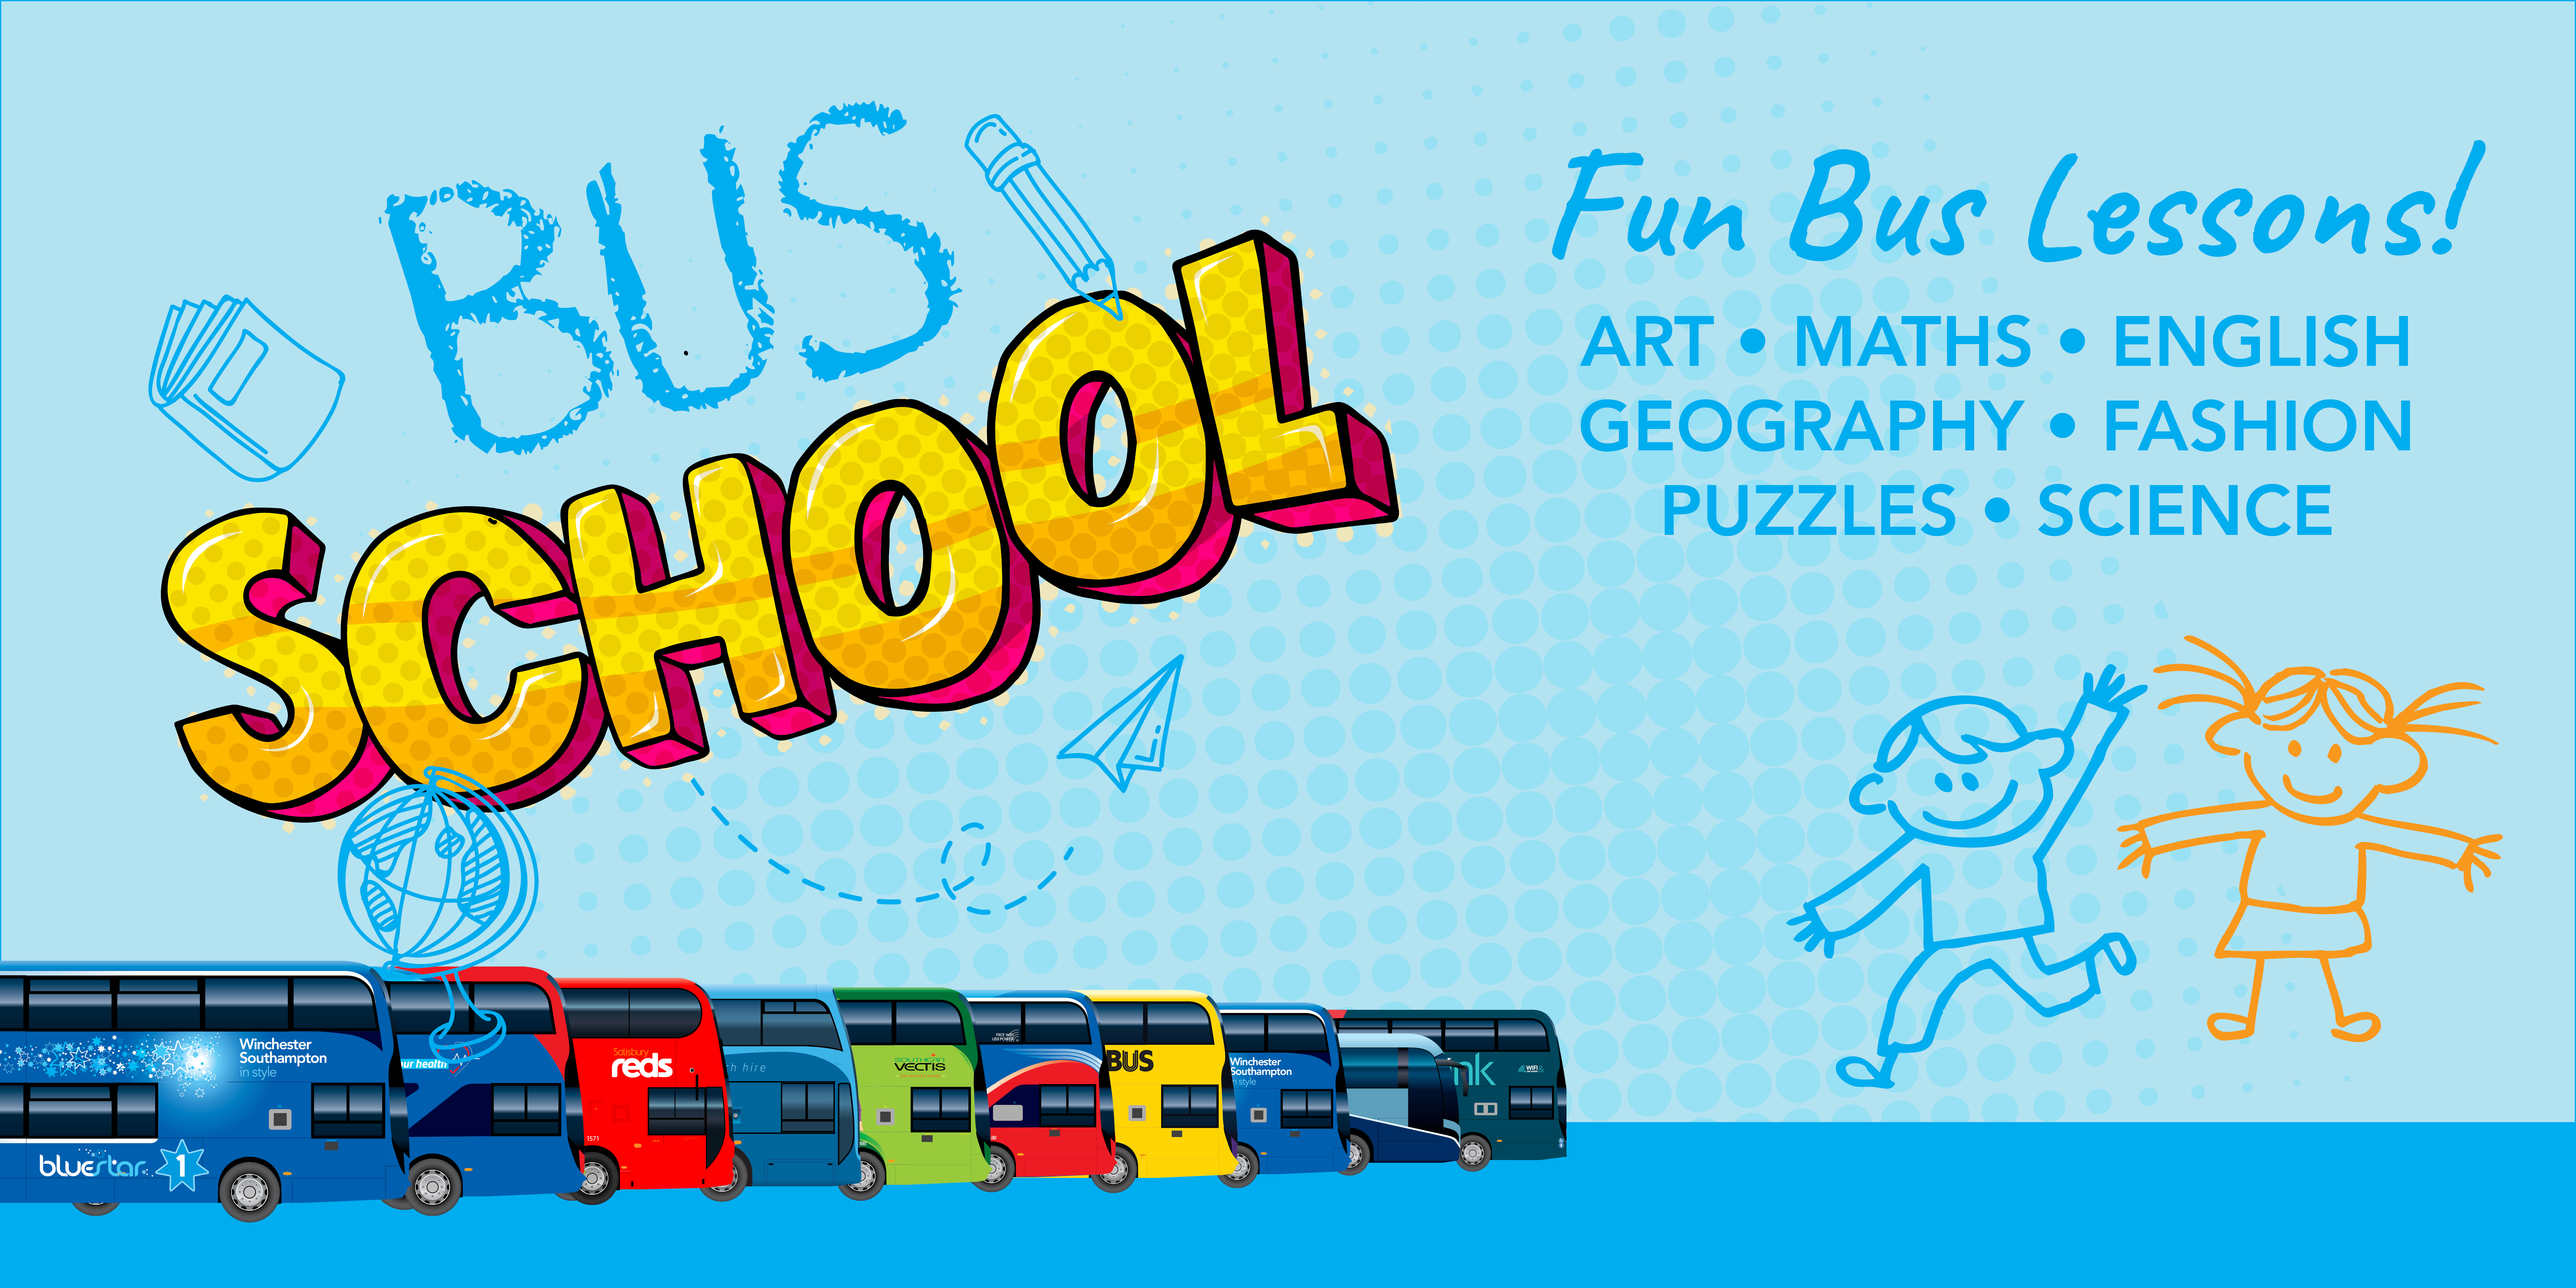 Image reading 'Bus School - fun bus lessons!'